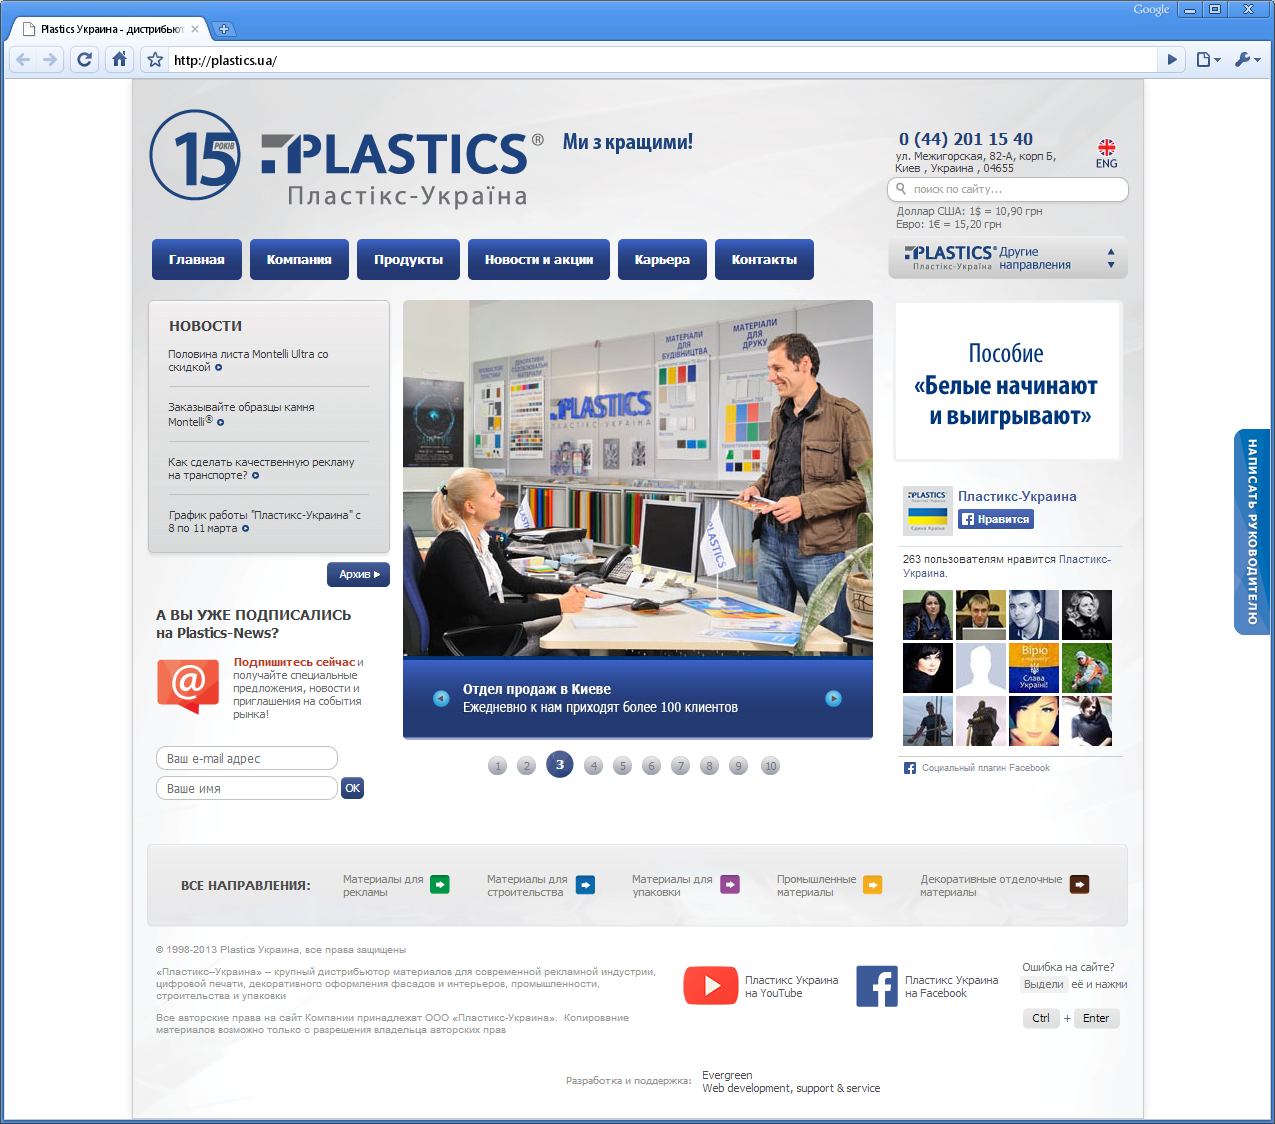 Scale corporate website, the leader of sales in the plastics market. The site works in three countries: Ukraine, Moldova, Georgia. | Evergreen projects 4